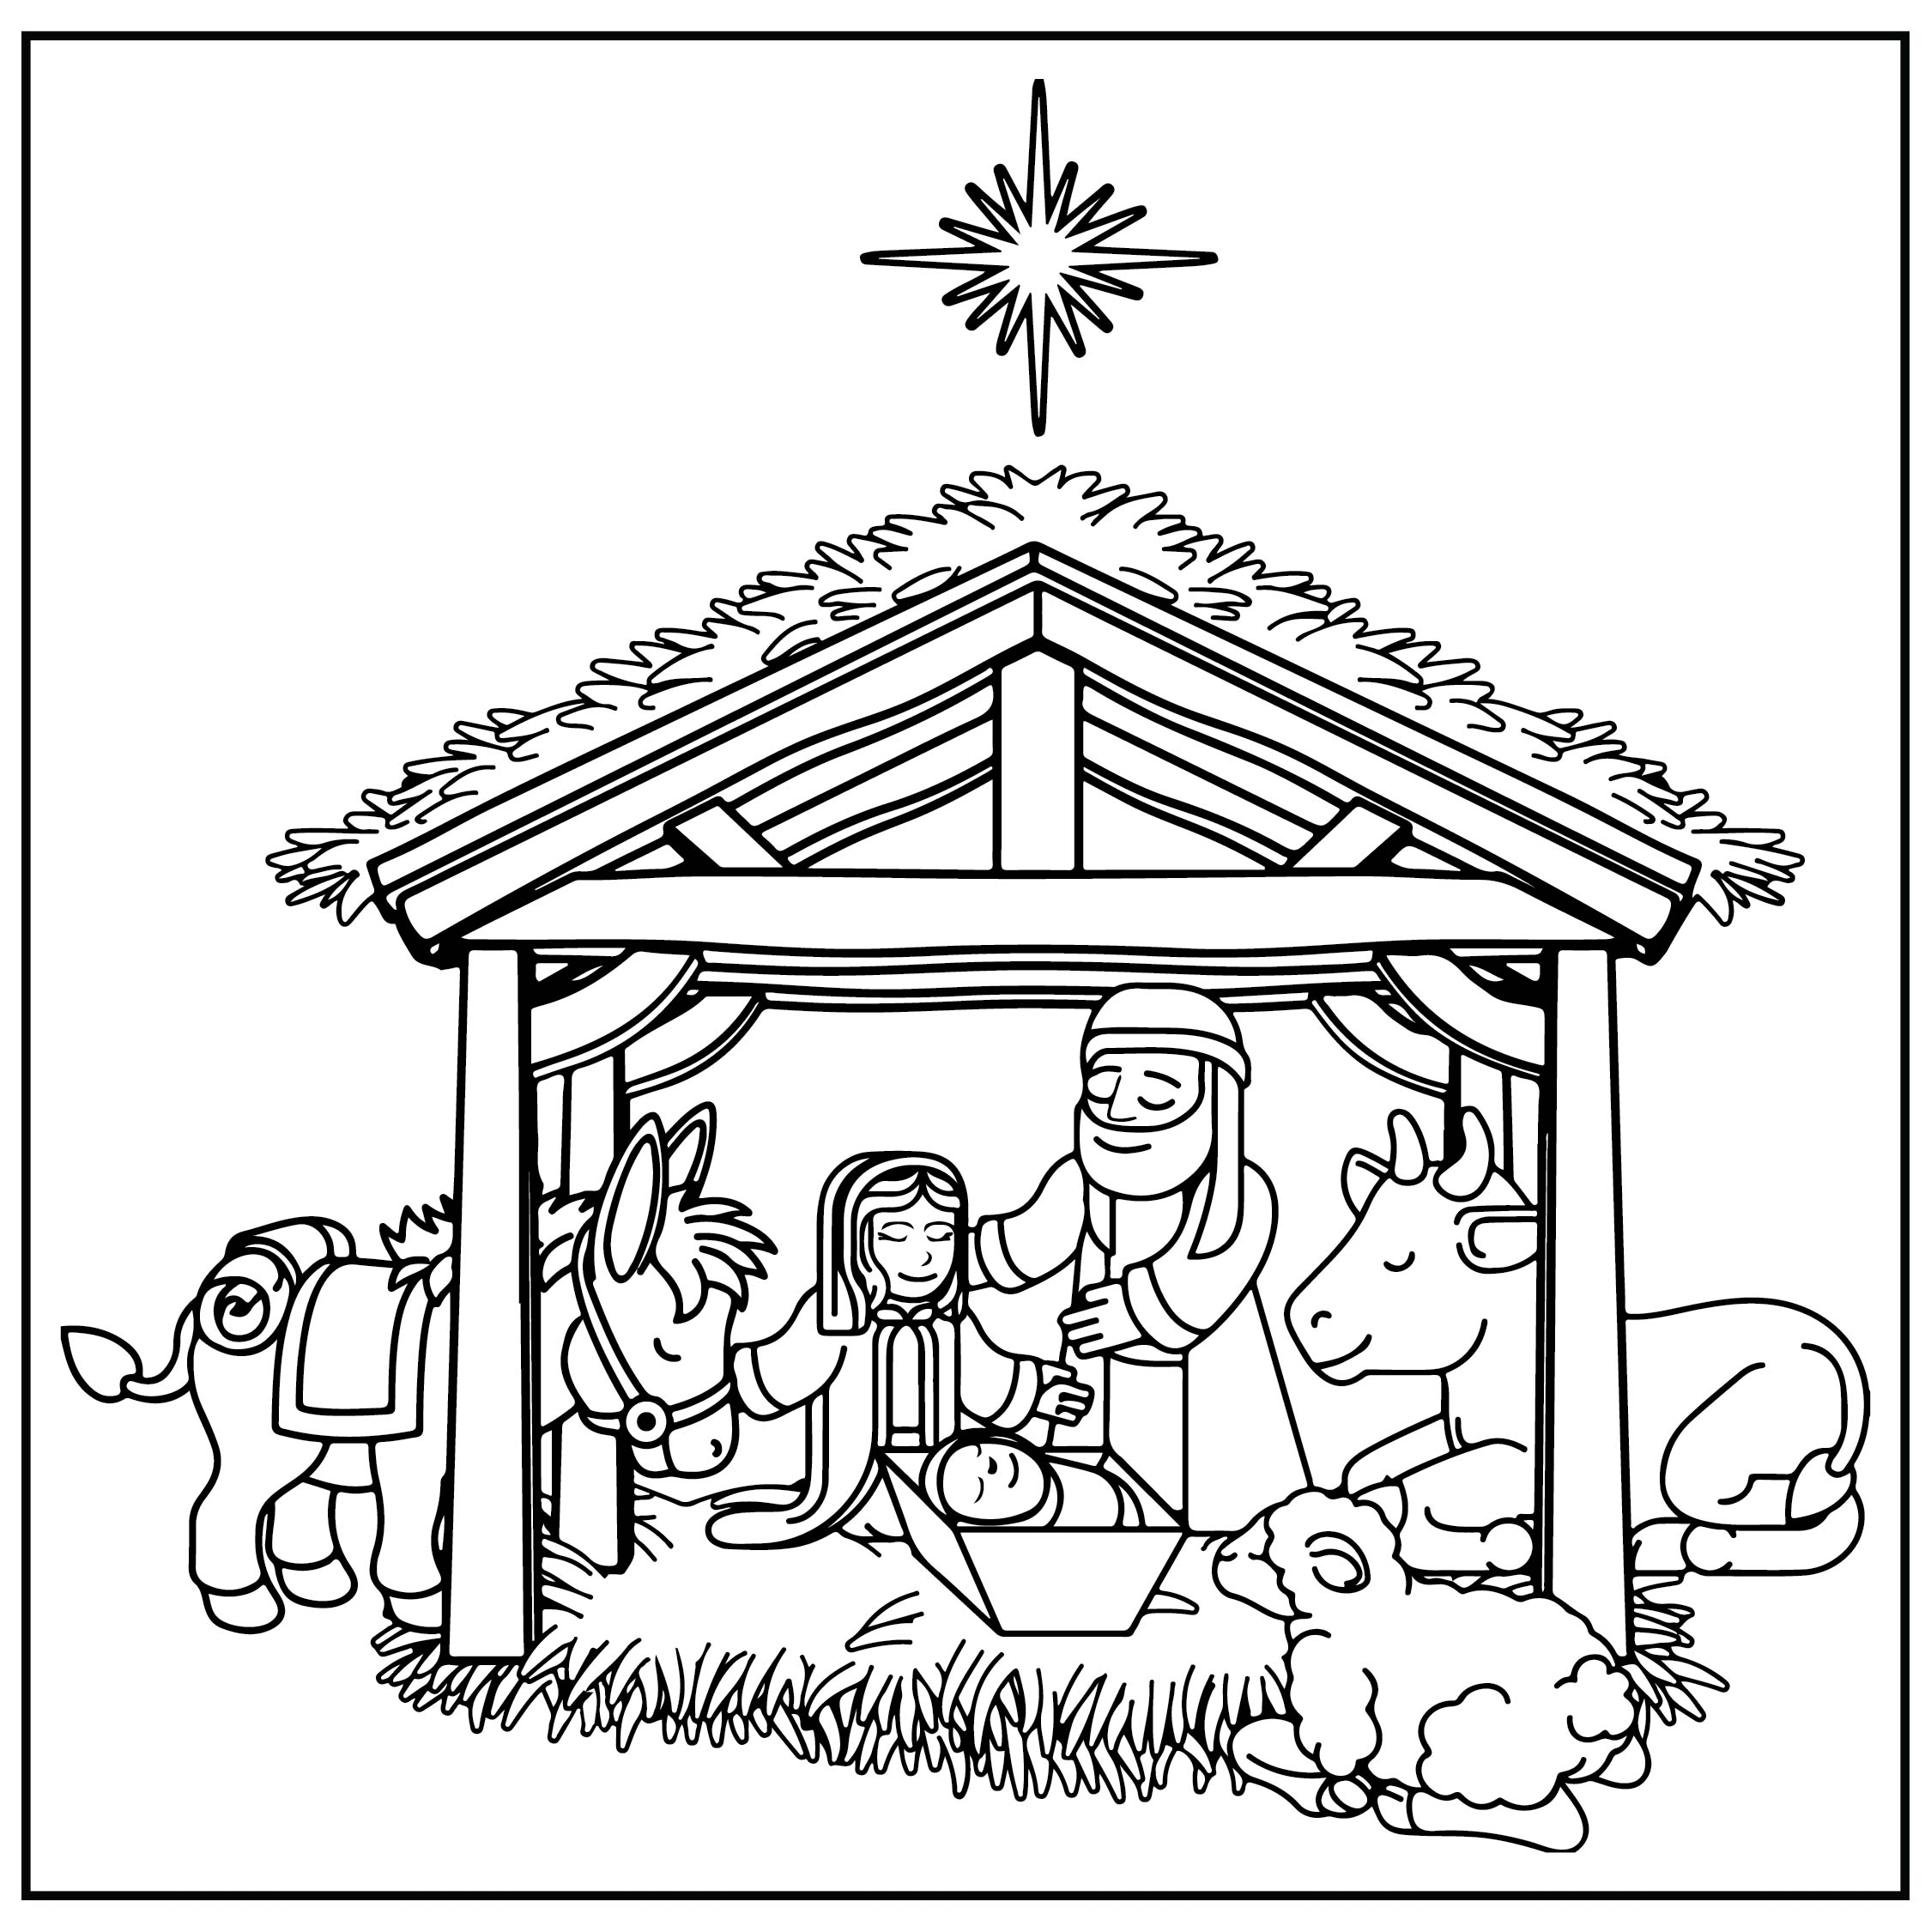 Christmas Nativity Scene Coloring Page Printable